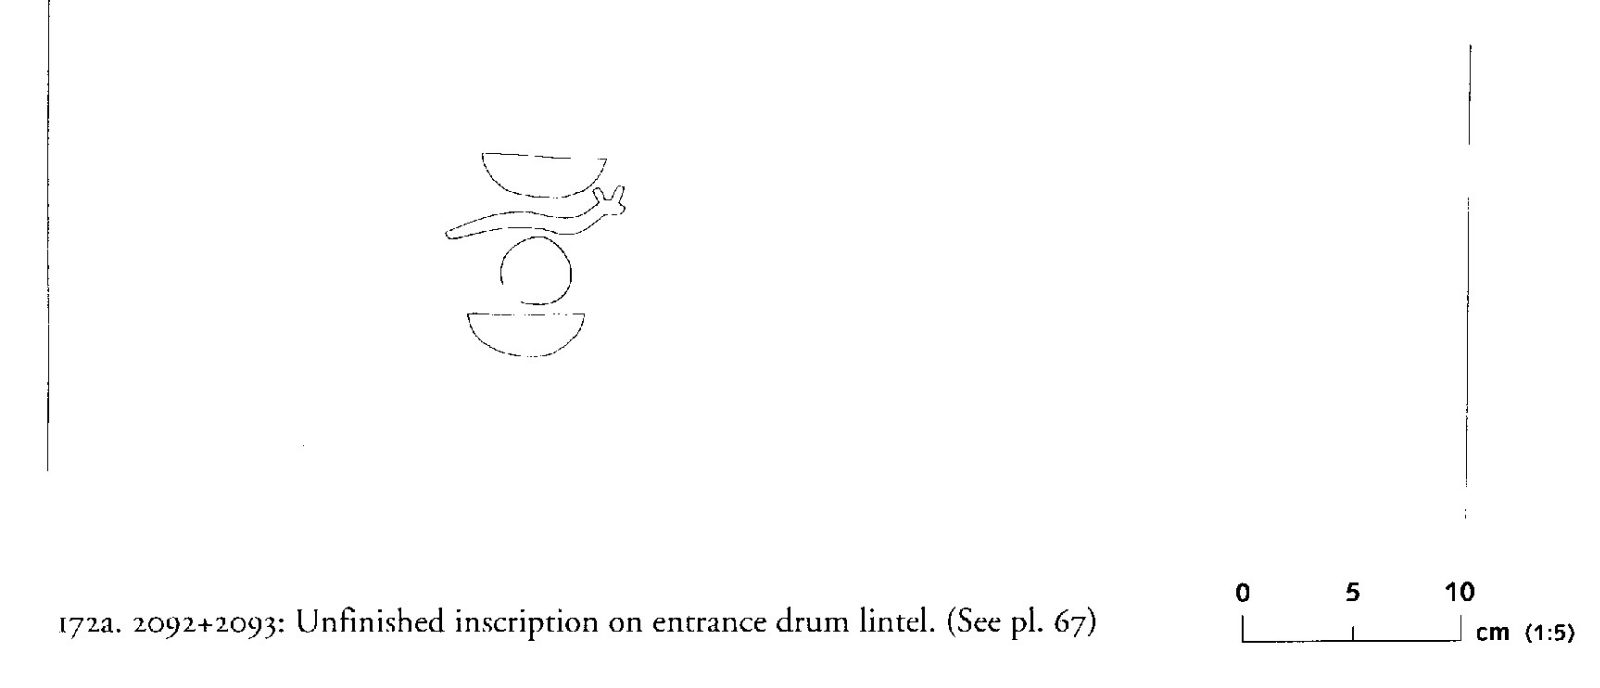 Drawings: G 2092+2093: inscription (unfinished) from entrance, drum